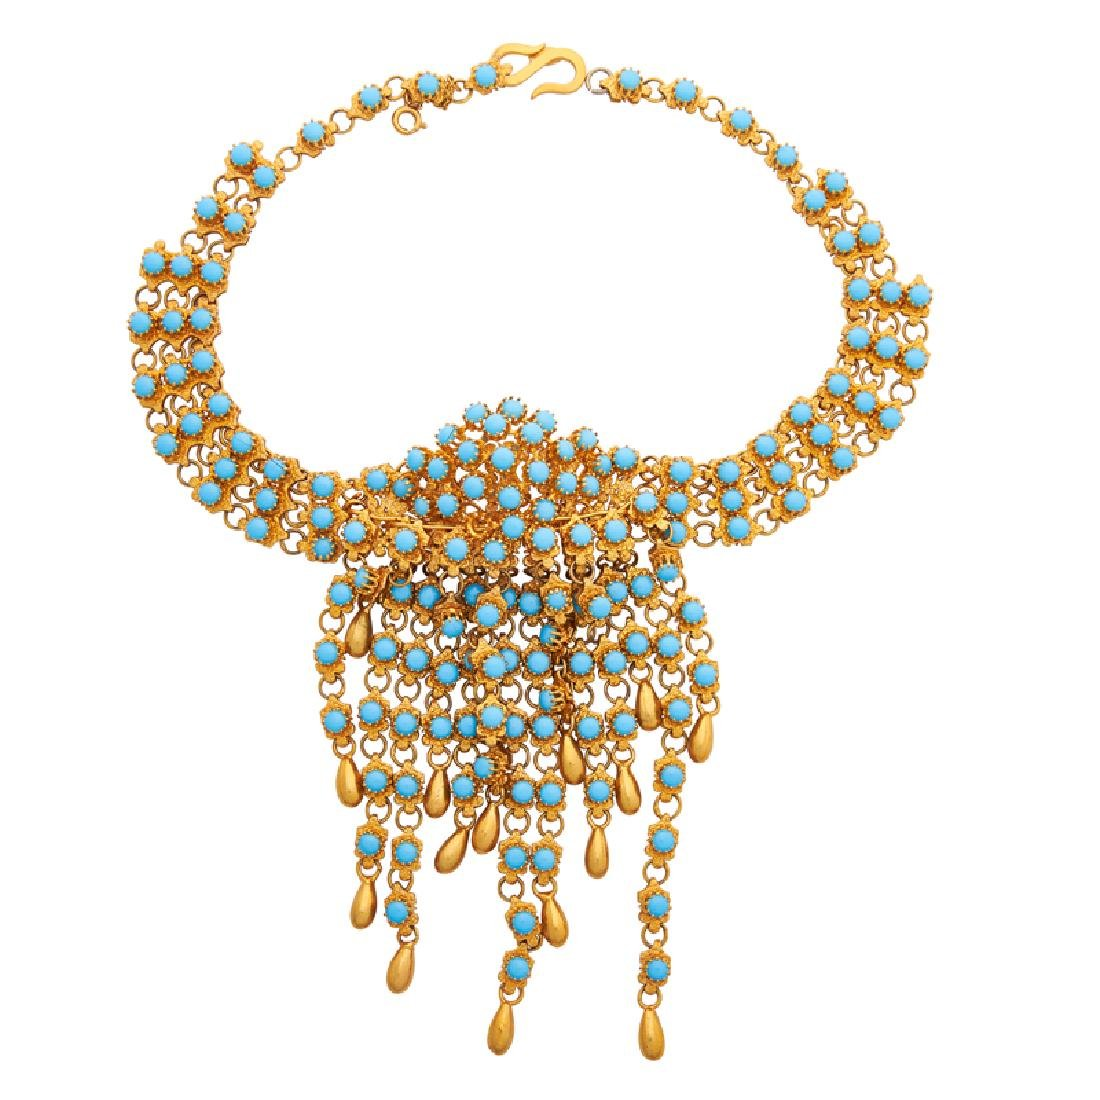 CHRISTIAN DIOR EGYPTIAN REVIVAL COSTUME COLLAR NECKLACE